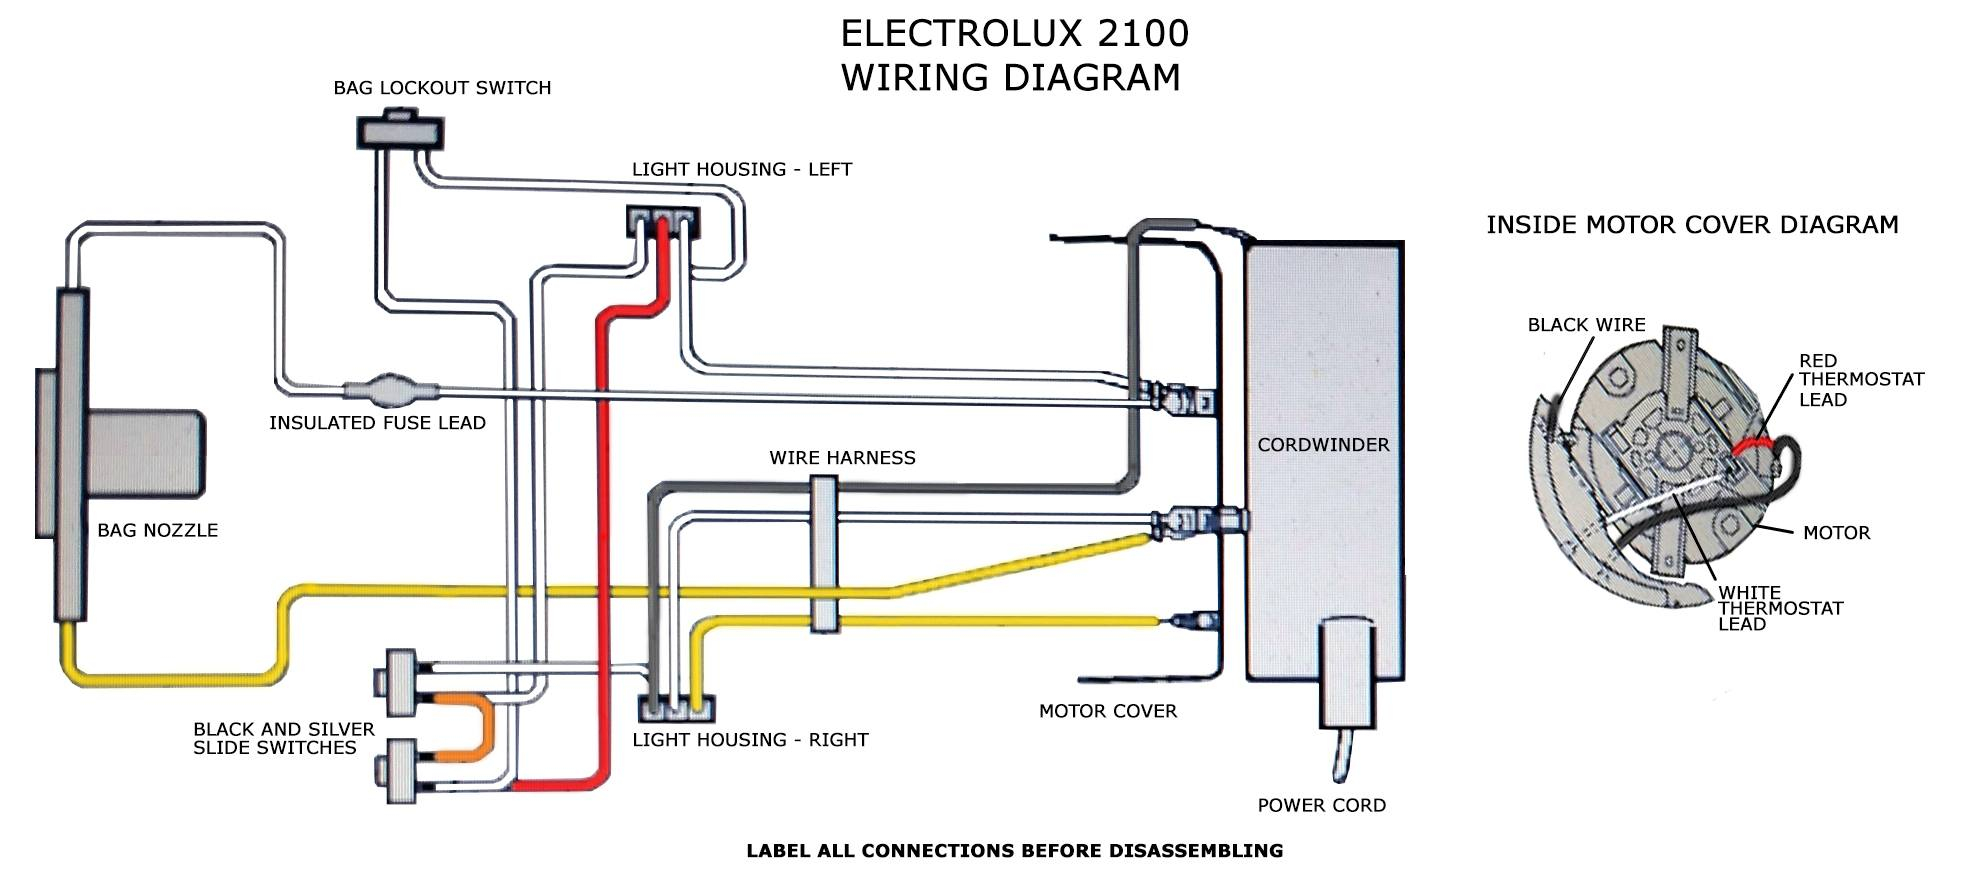 electrolux vacuum wiring diagram Collection-2100 20wiring 20diagram In Electrolux Wiring 14-s